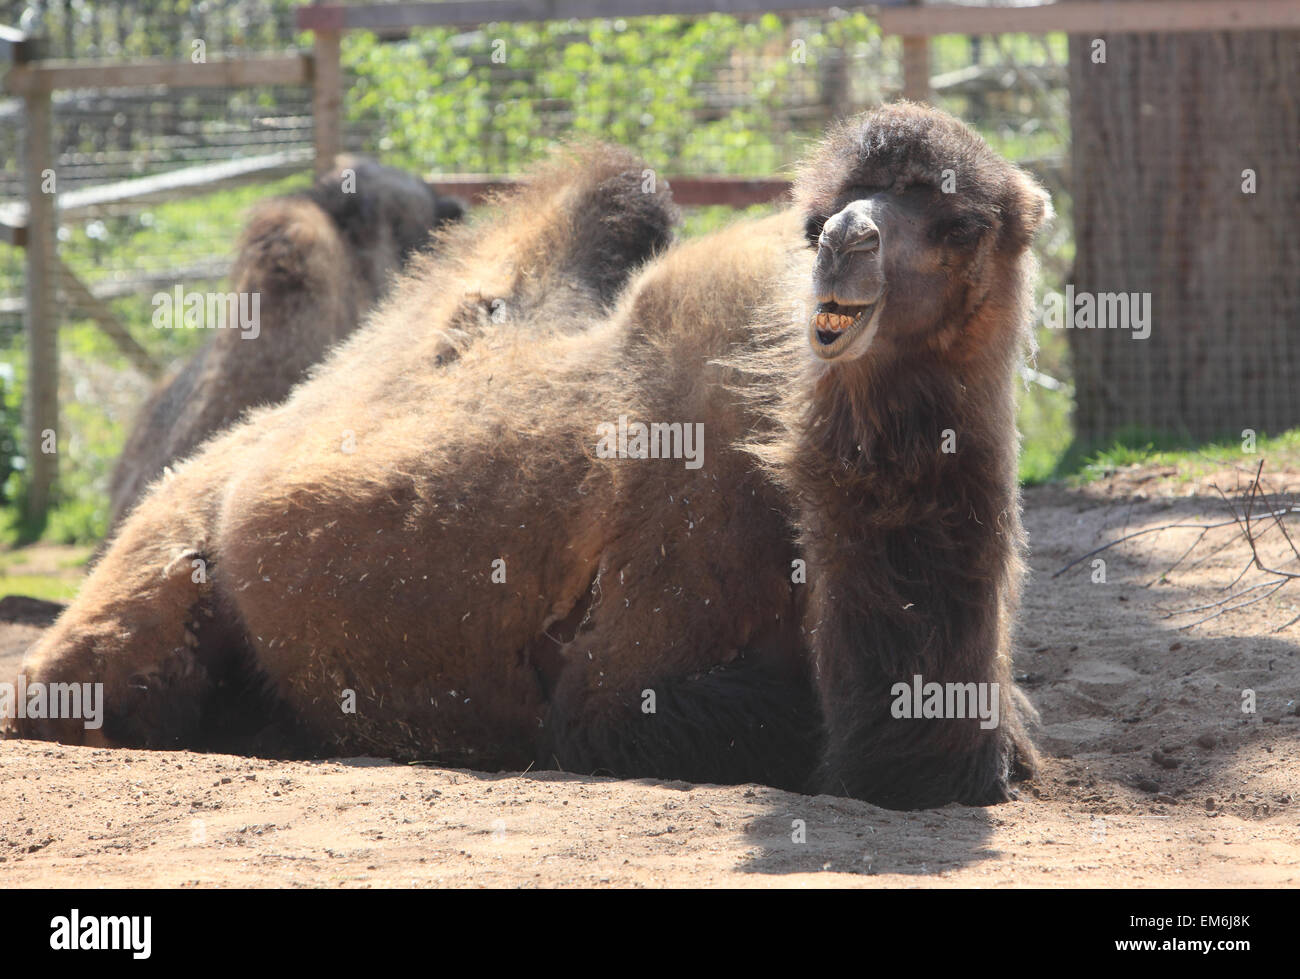 A Bactrian two humped camel, in Regent Park's London Zoo, in England, UK - Stock Image